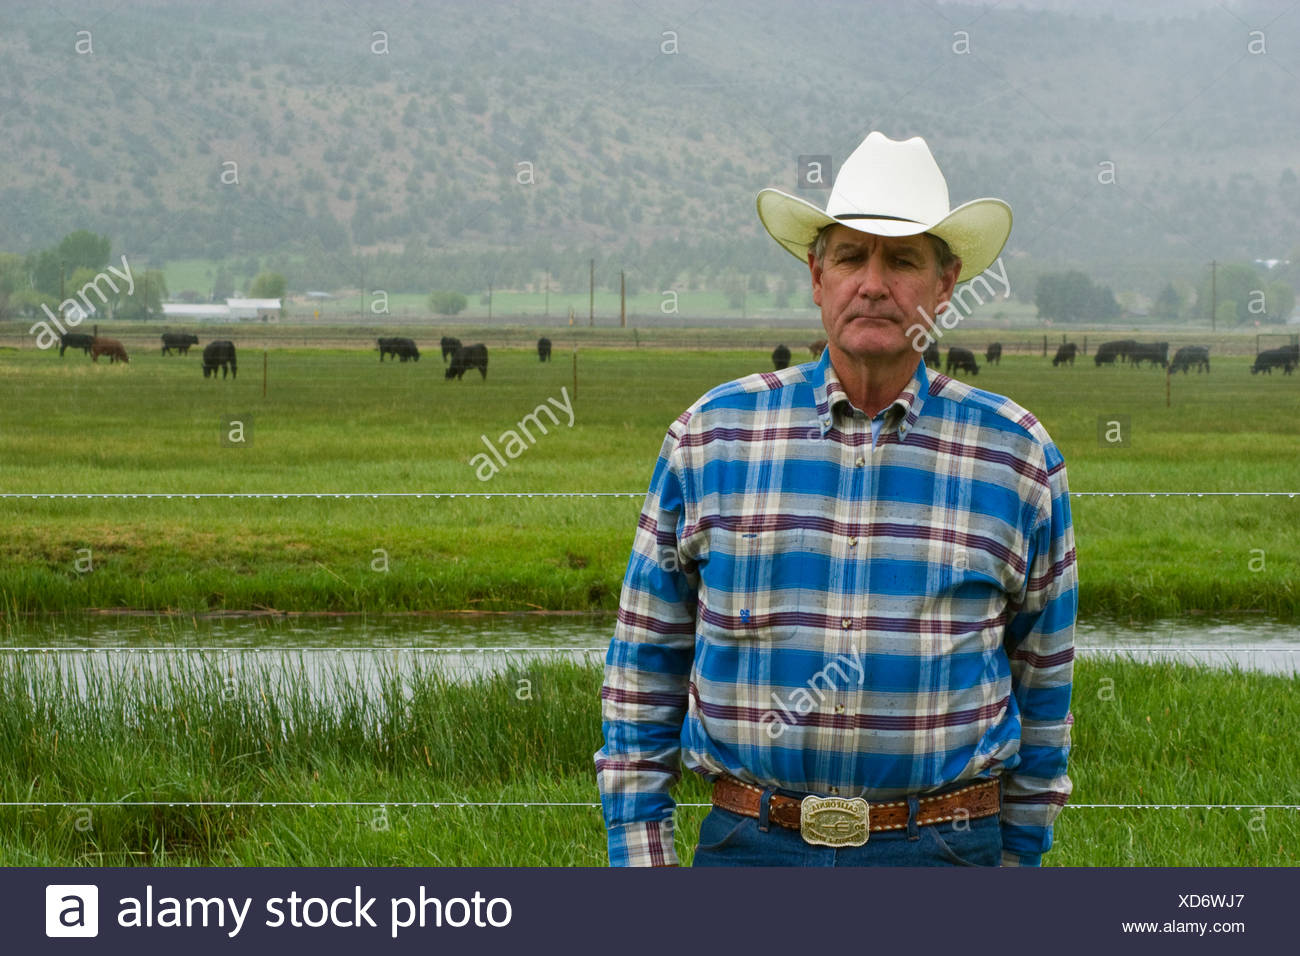 Livestock - A cattle rancher / beef producer poses near one of his pastures on a stormy day / Klamath Basin, California, USA. - Stock Image